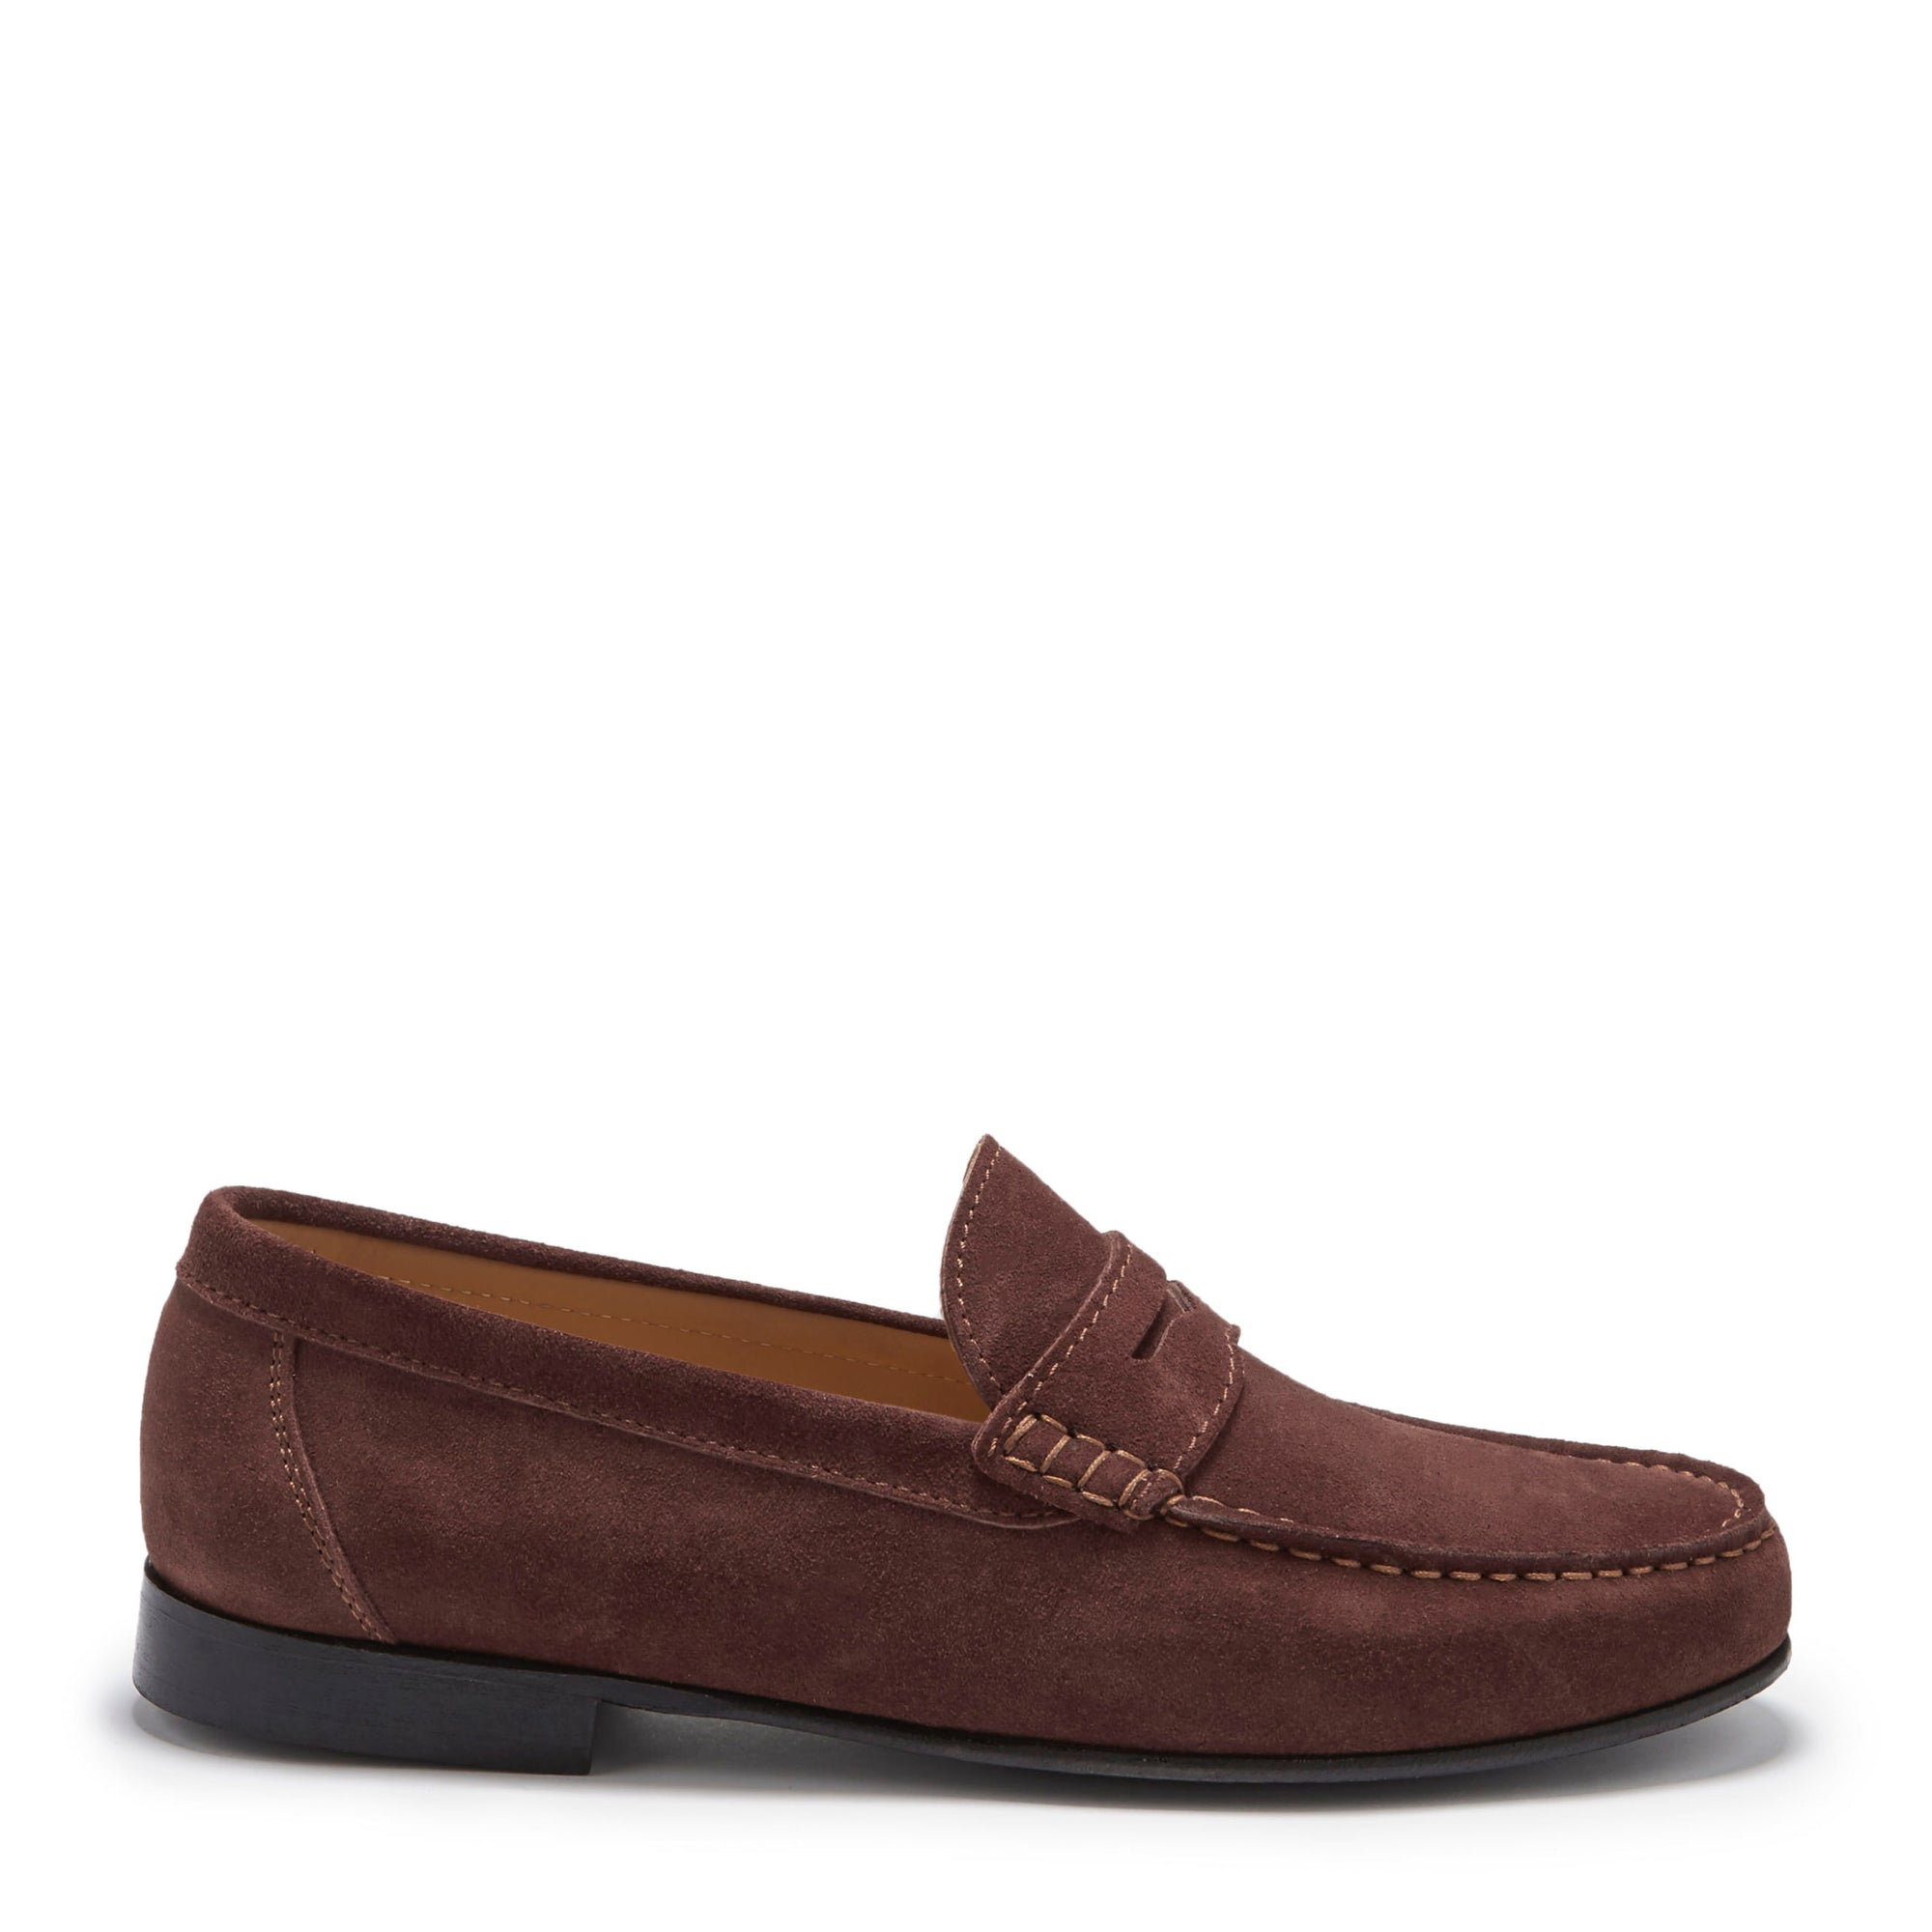 Mahogany Brown Suede, Penny Loafers, Leather Sole Side